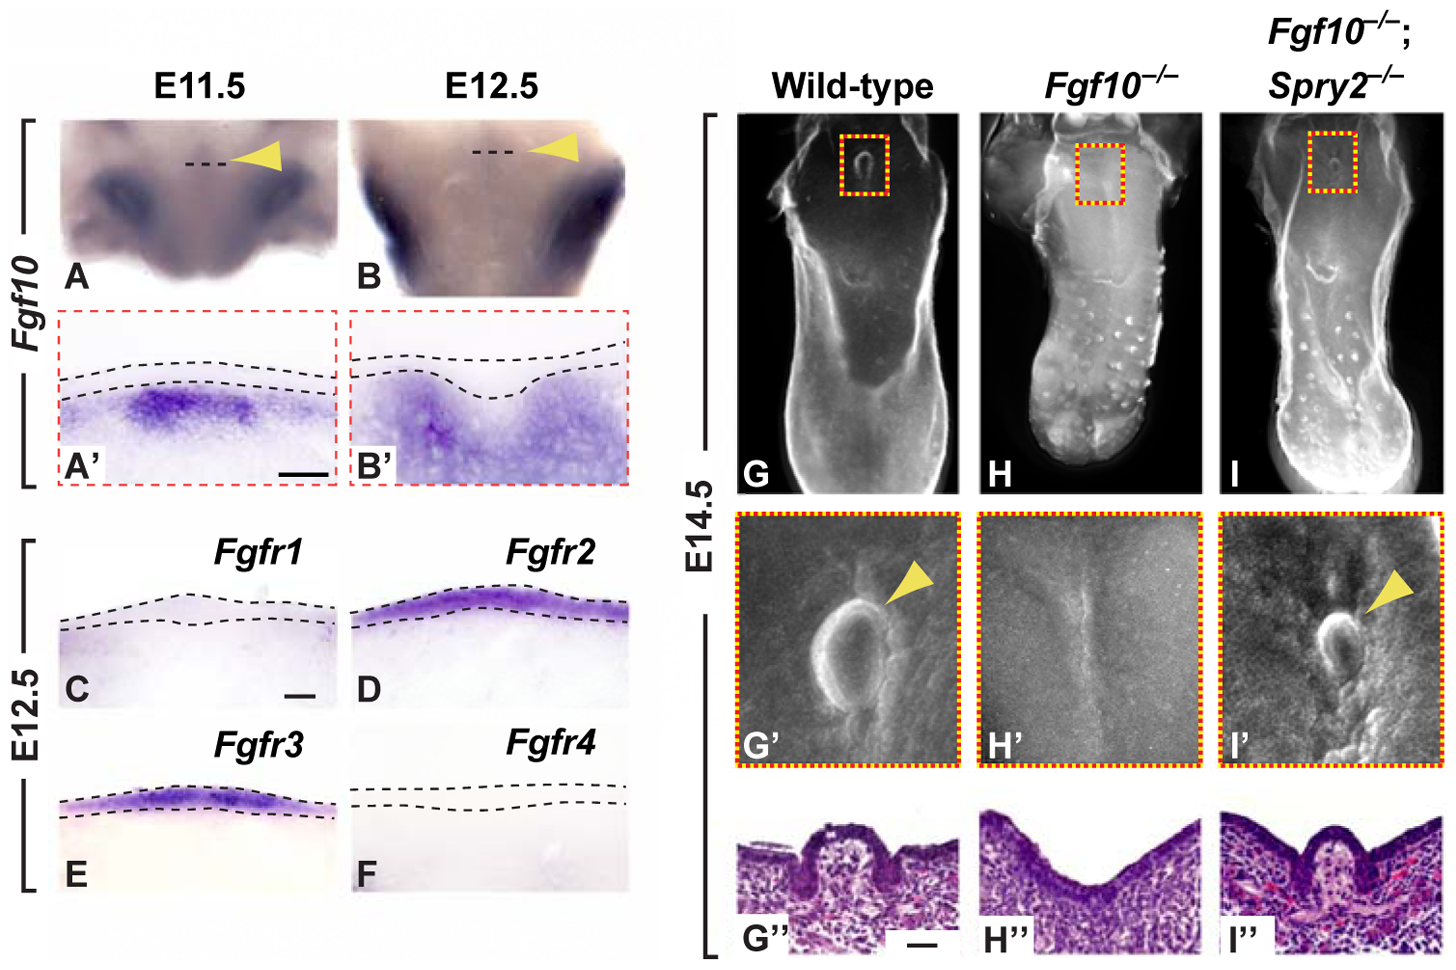 <i>Fgf10</i> is required for CVP development and is antagonized by <i>Spry2</i>.